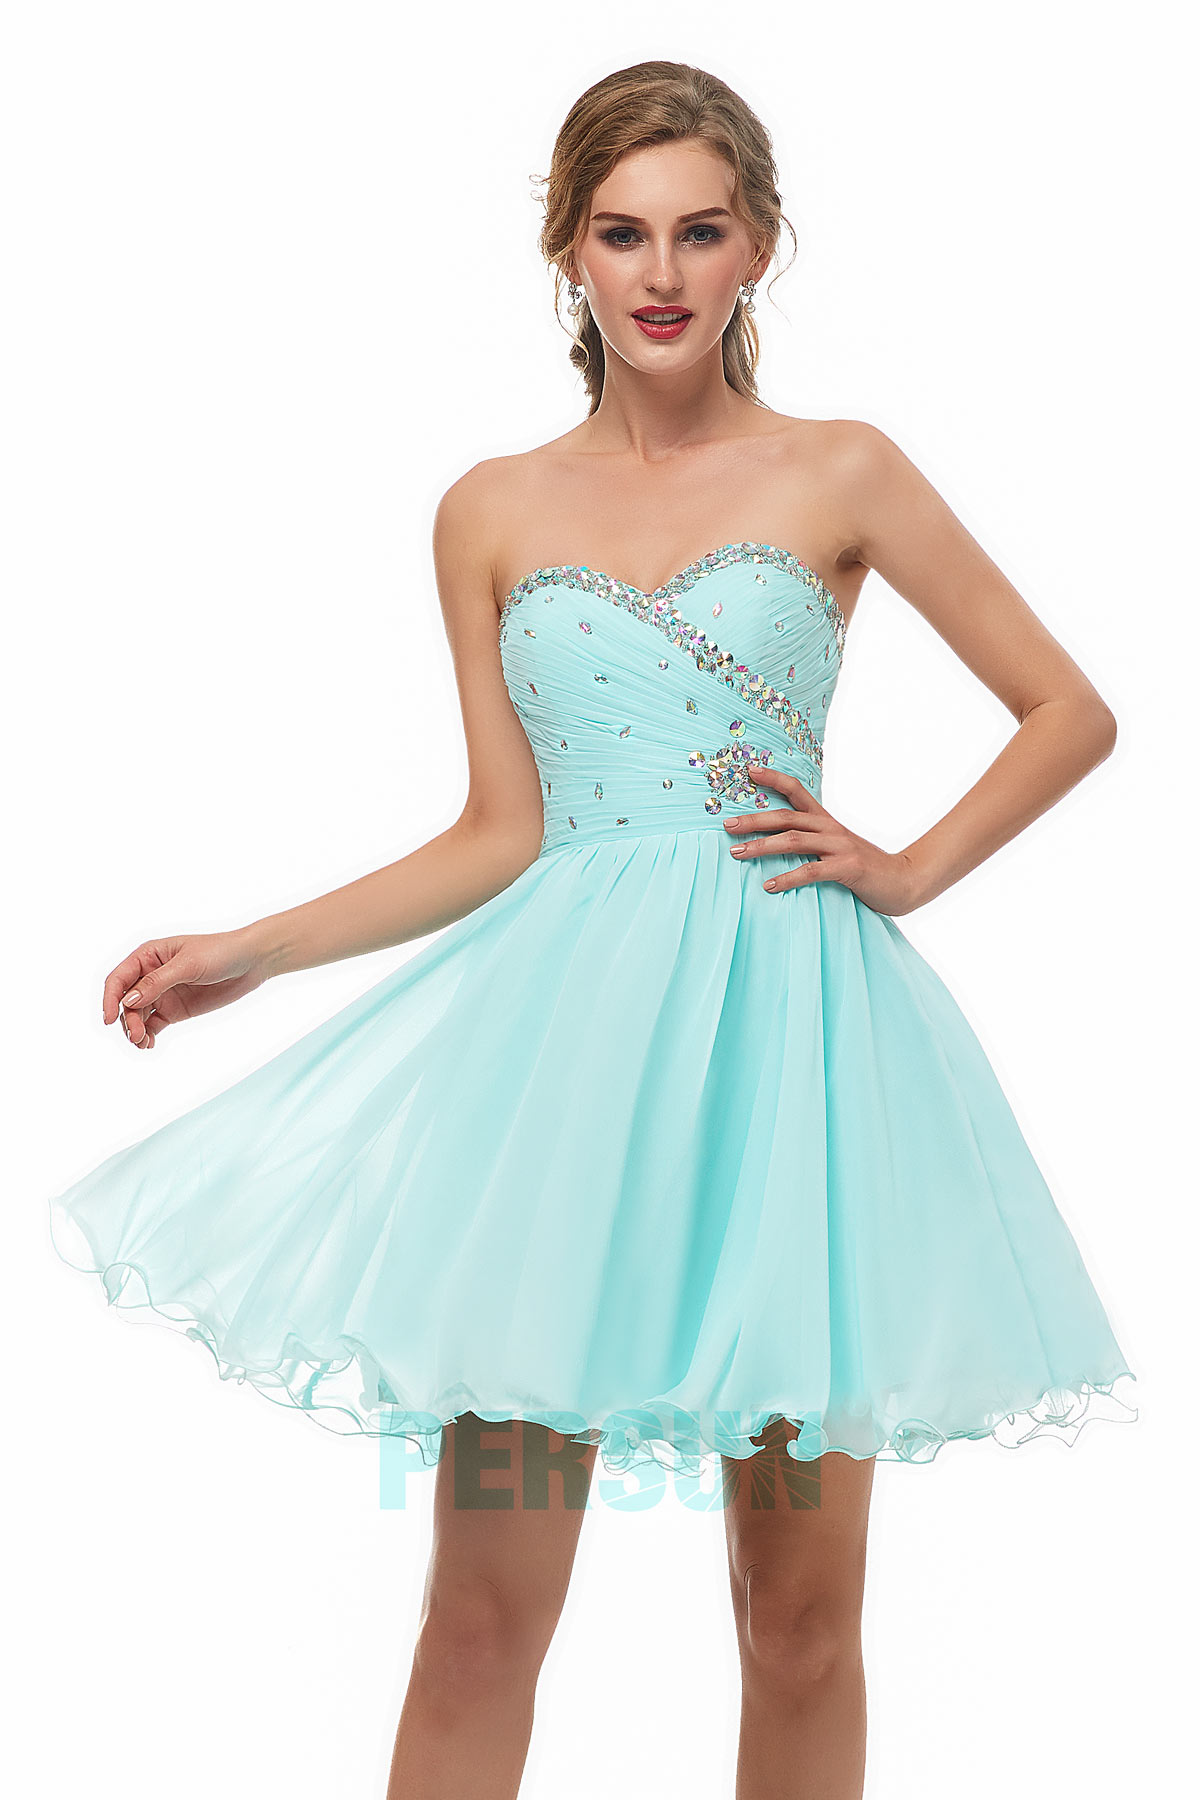 robe soirée patineuse turquoise clair bustier coeur embelli de strass